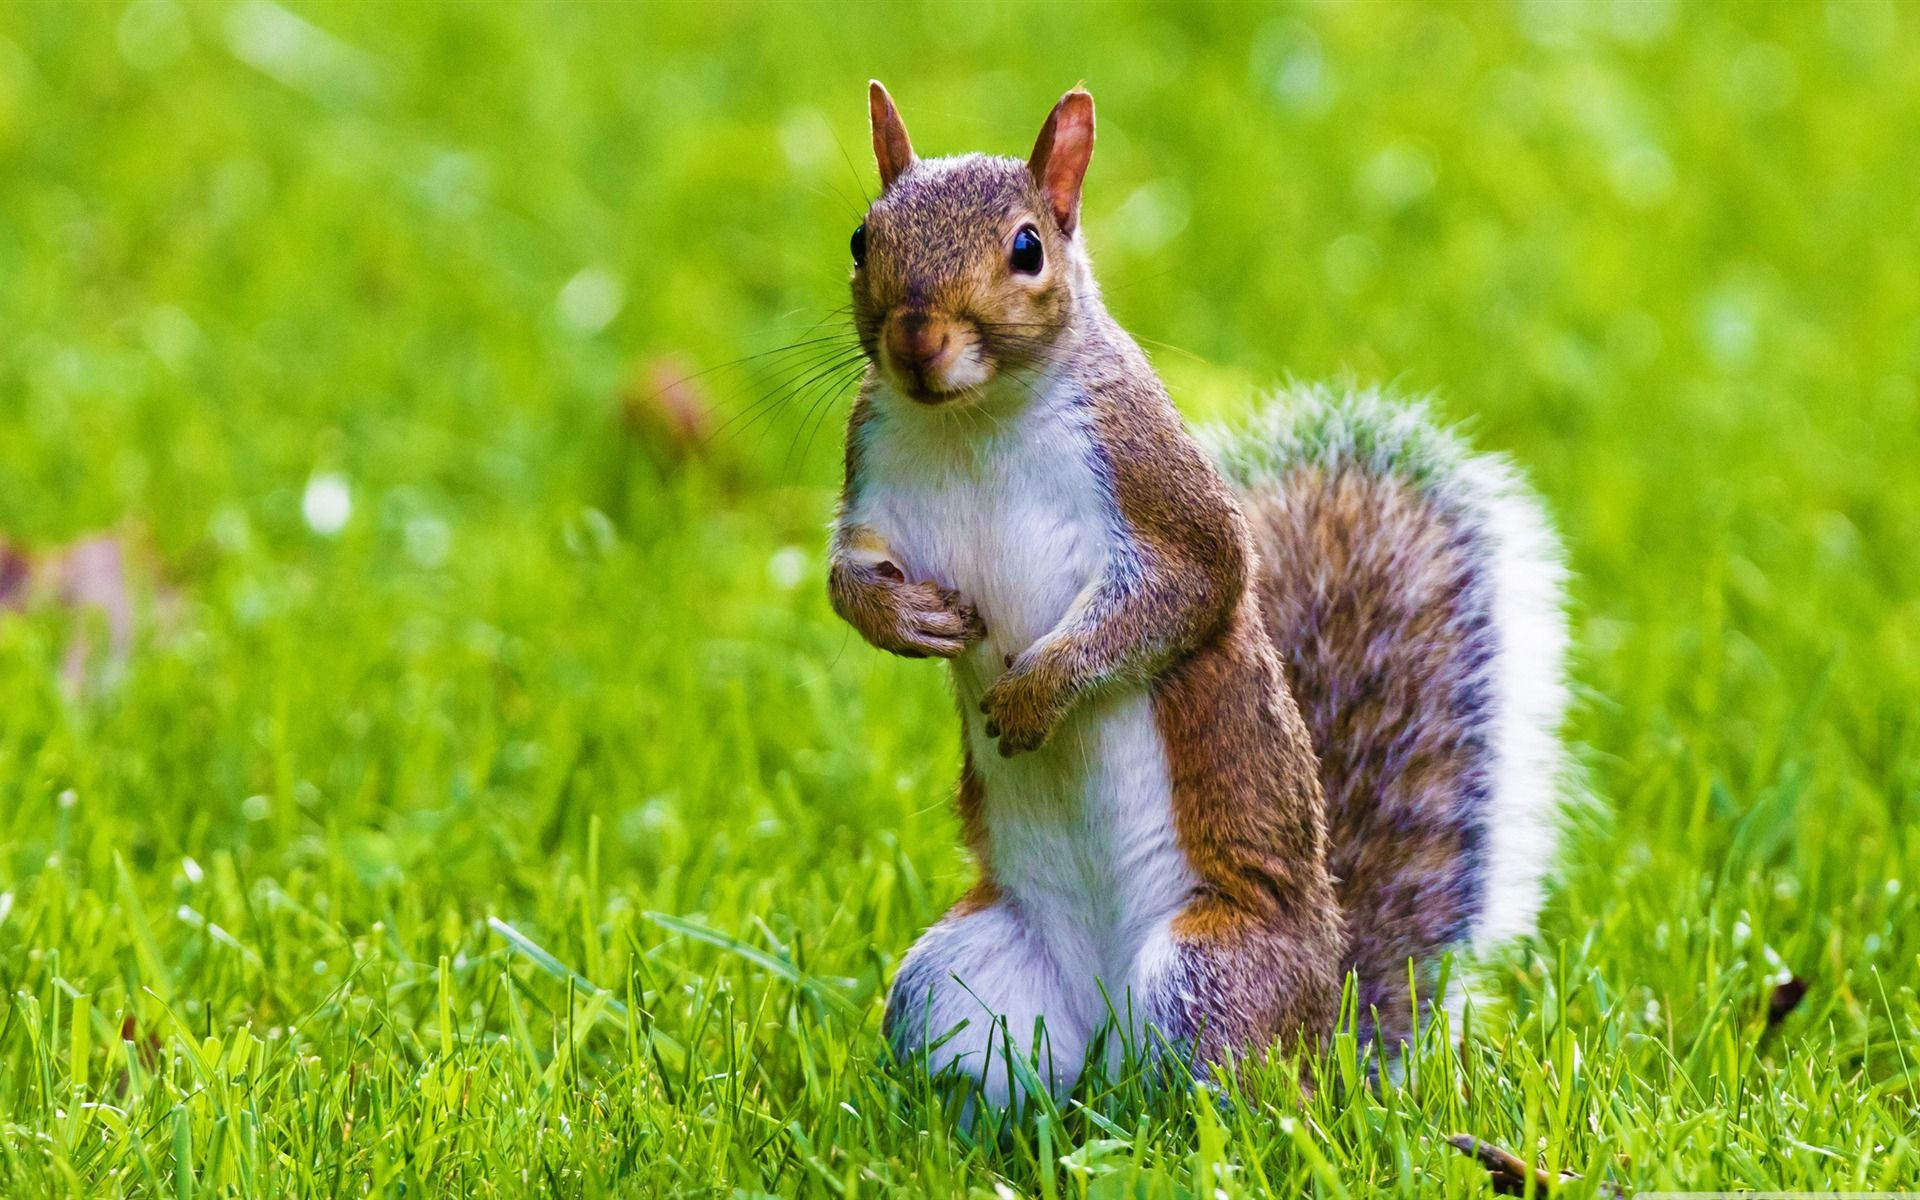 cute squirrel free background - photo #8